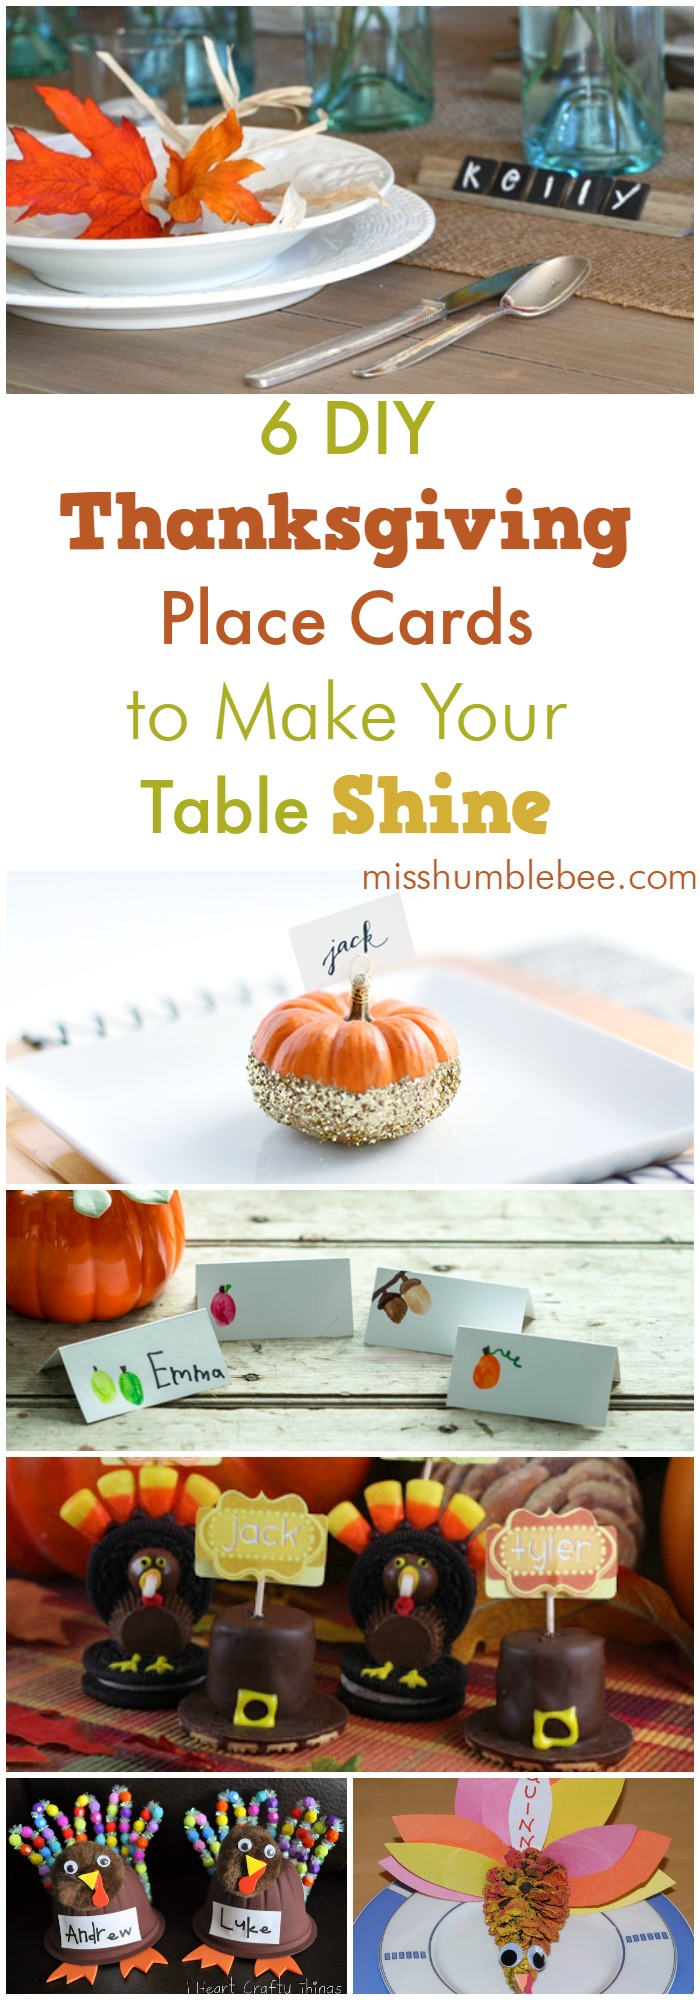 Six Diy Thanksgiving Place Cards To Make Your Table Shine